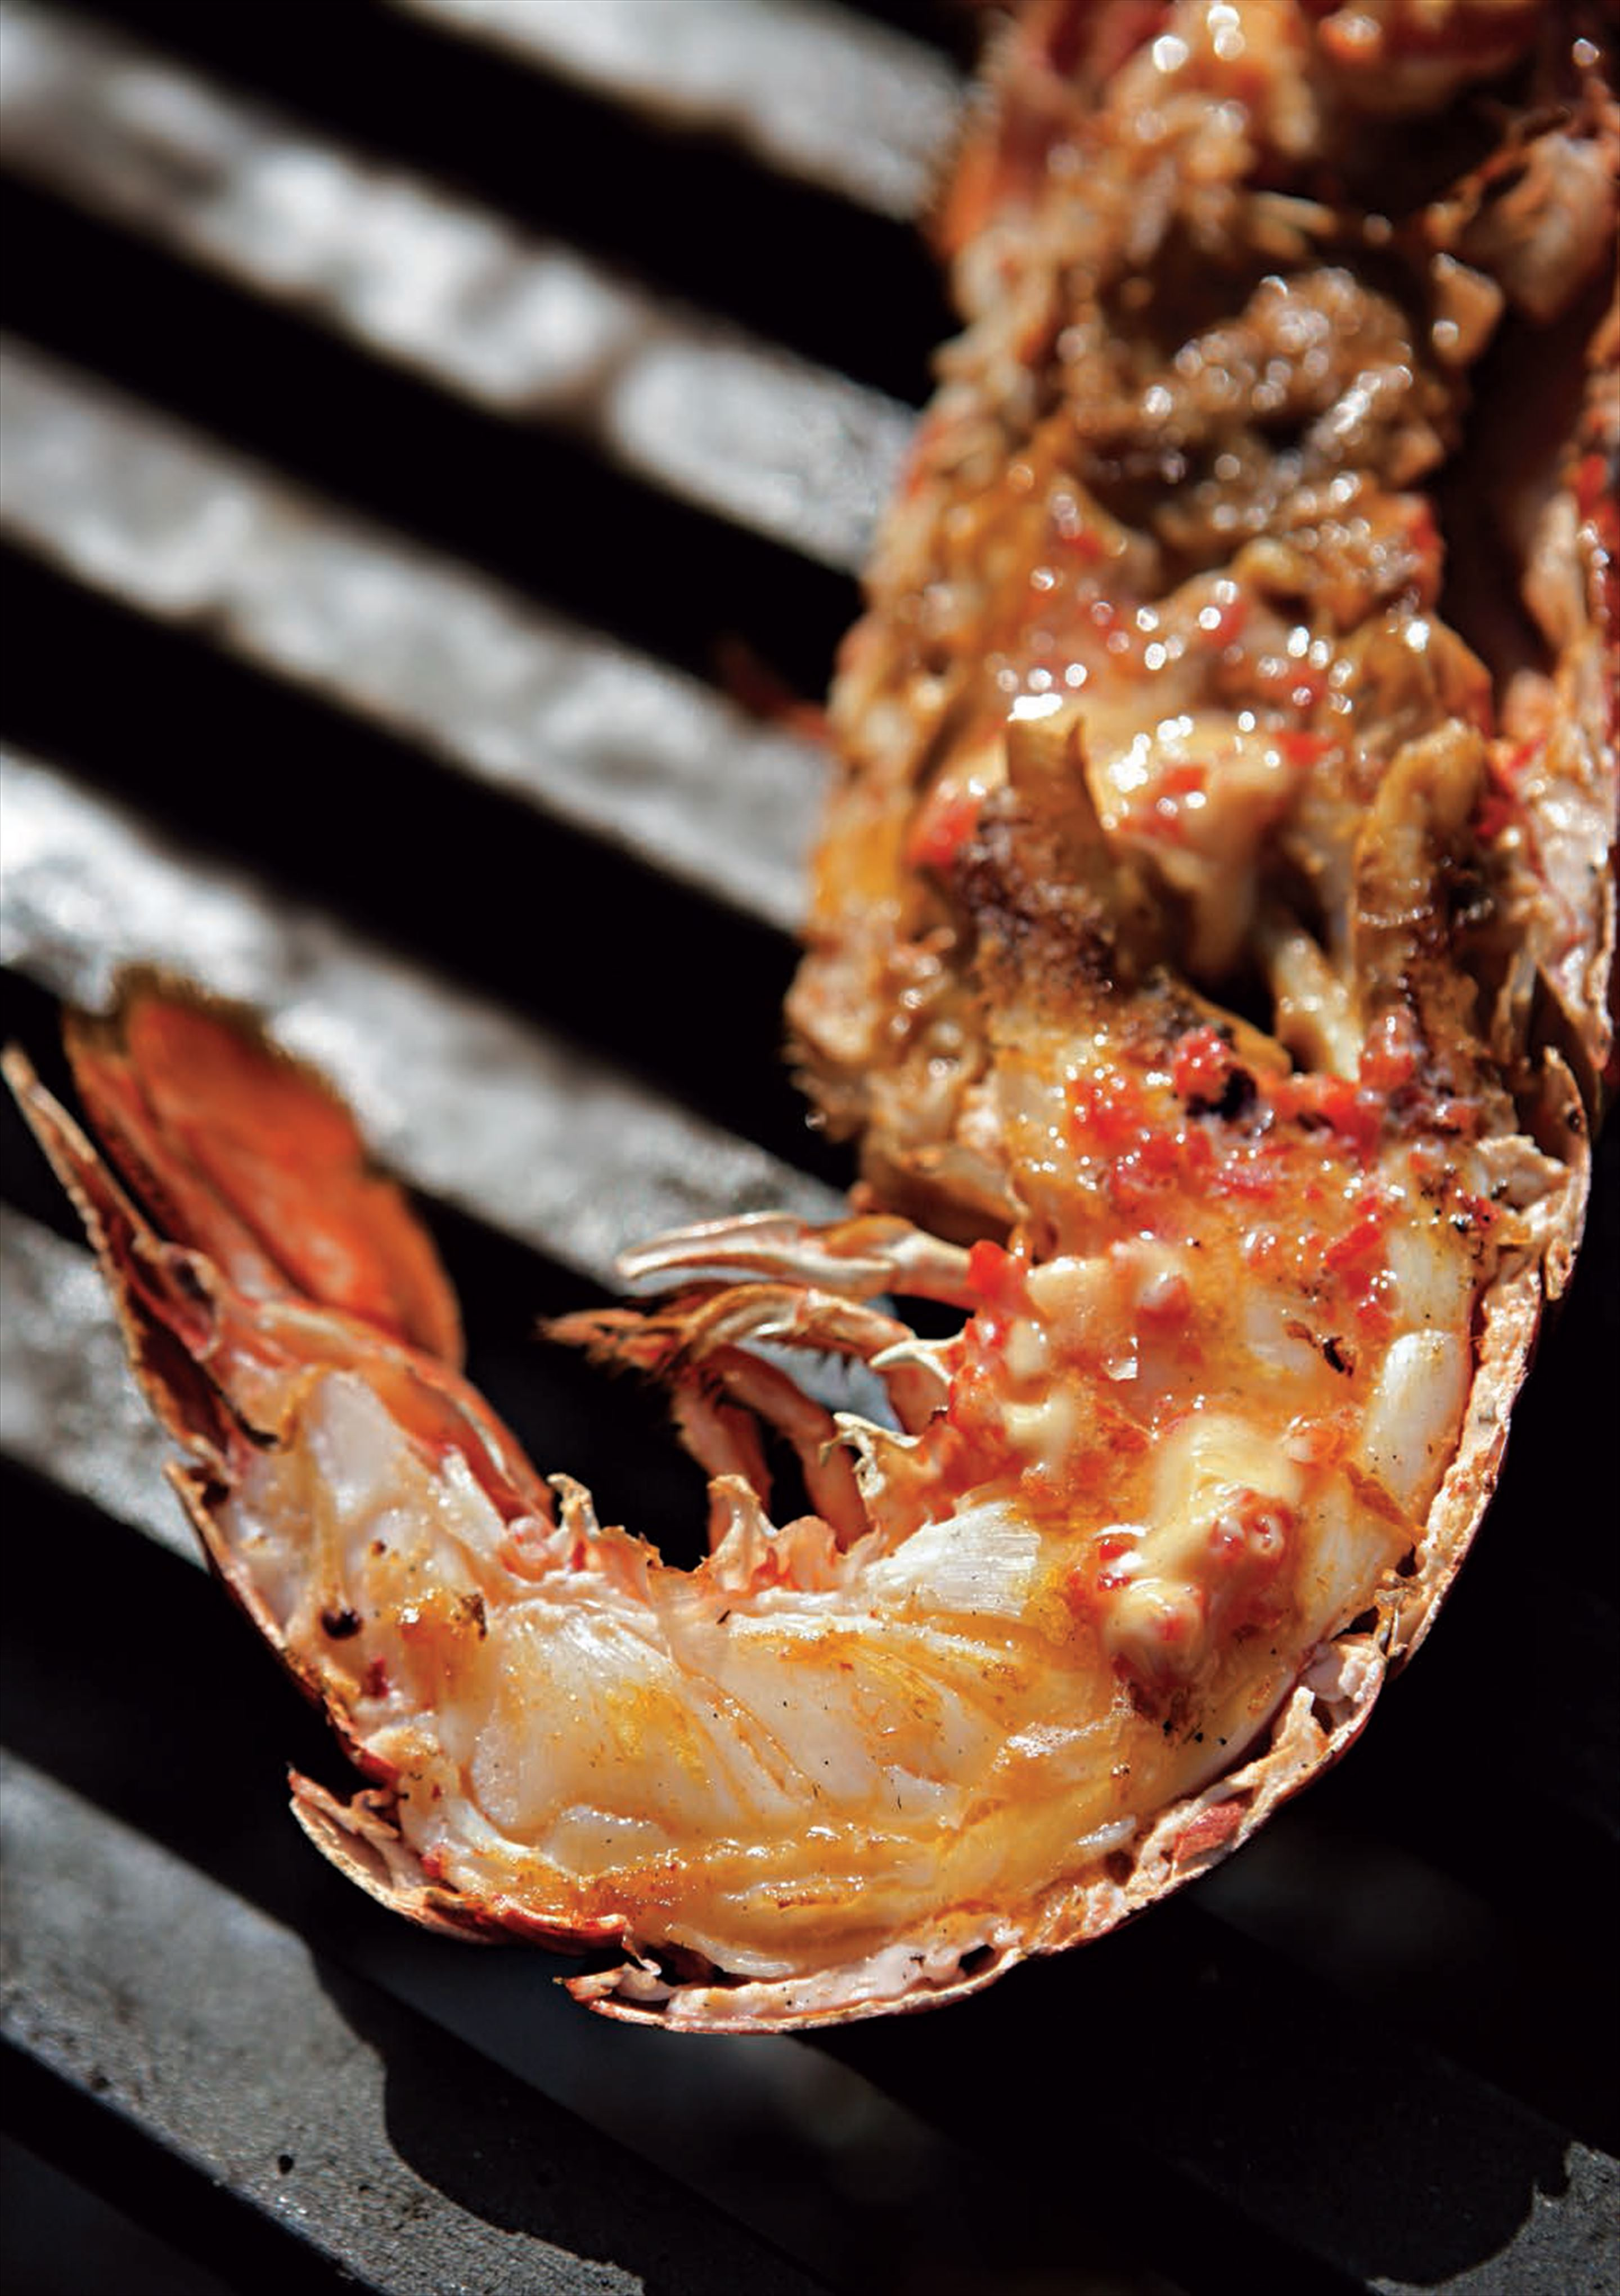 Barbecued lobster with lime and chilli butter